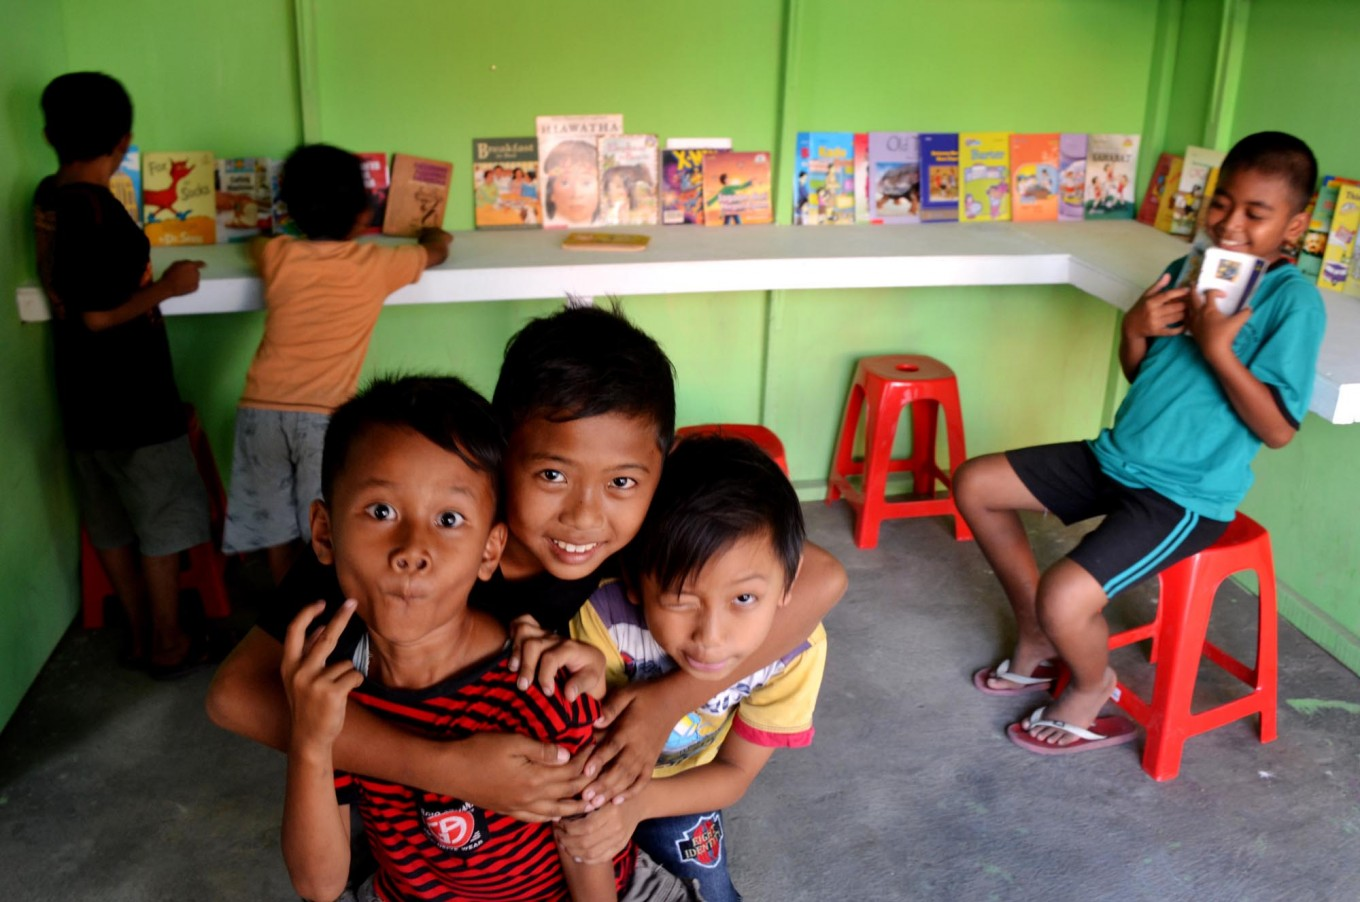 Baron Cilik children express joy at their newlibrary, which was set up as part of the Jener River Festival. JP/Stefanus Ajie